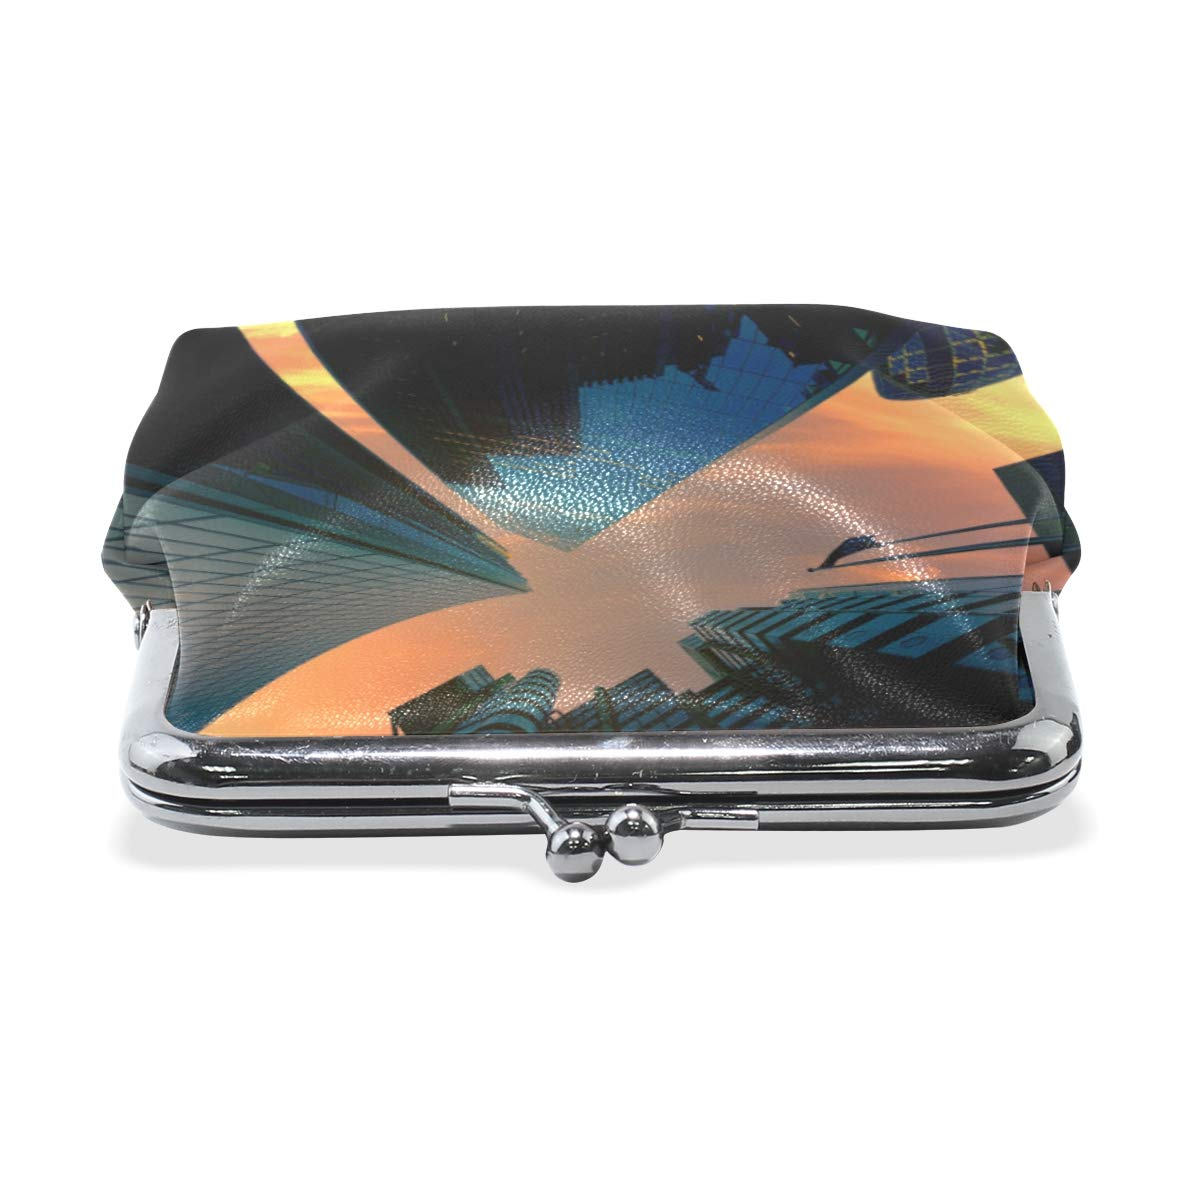 TIKISMILE Architectural Design Leather Fashion Buckle Cute Coin Purse Bags Clutch Pouch Wallet